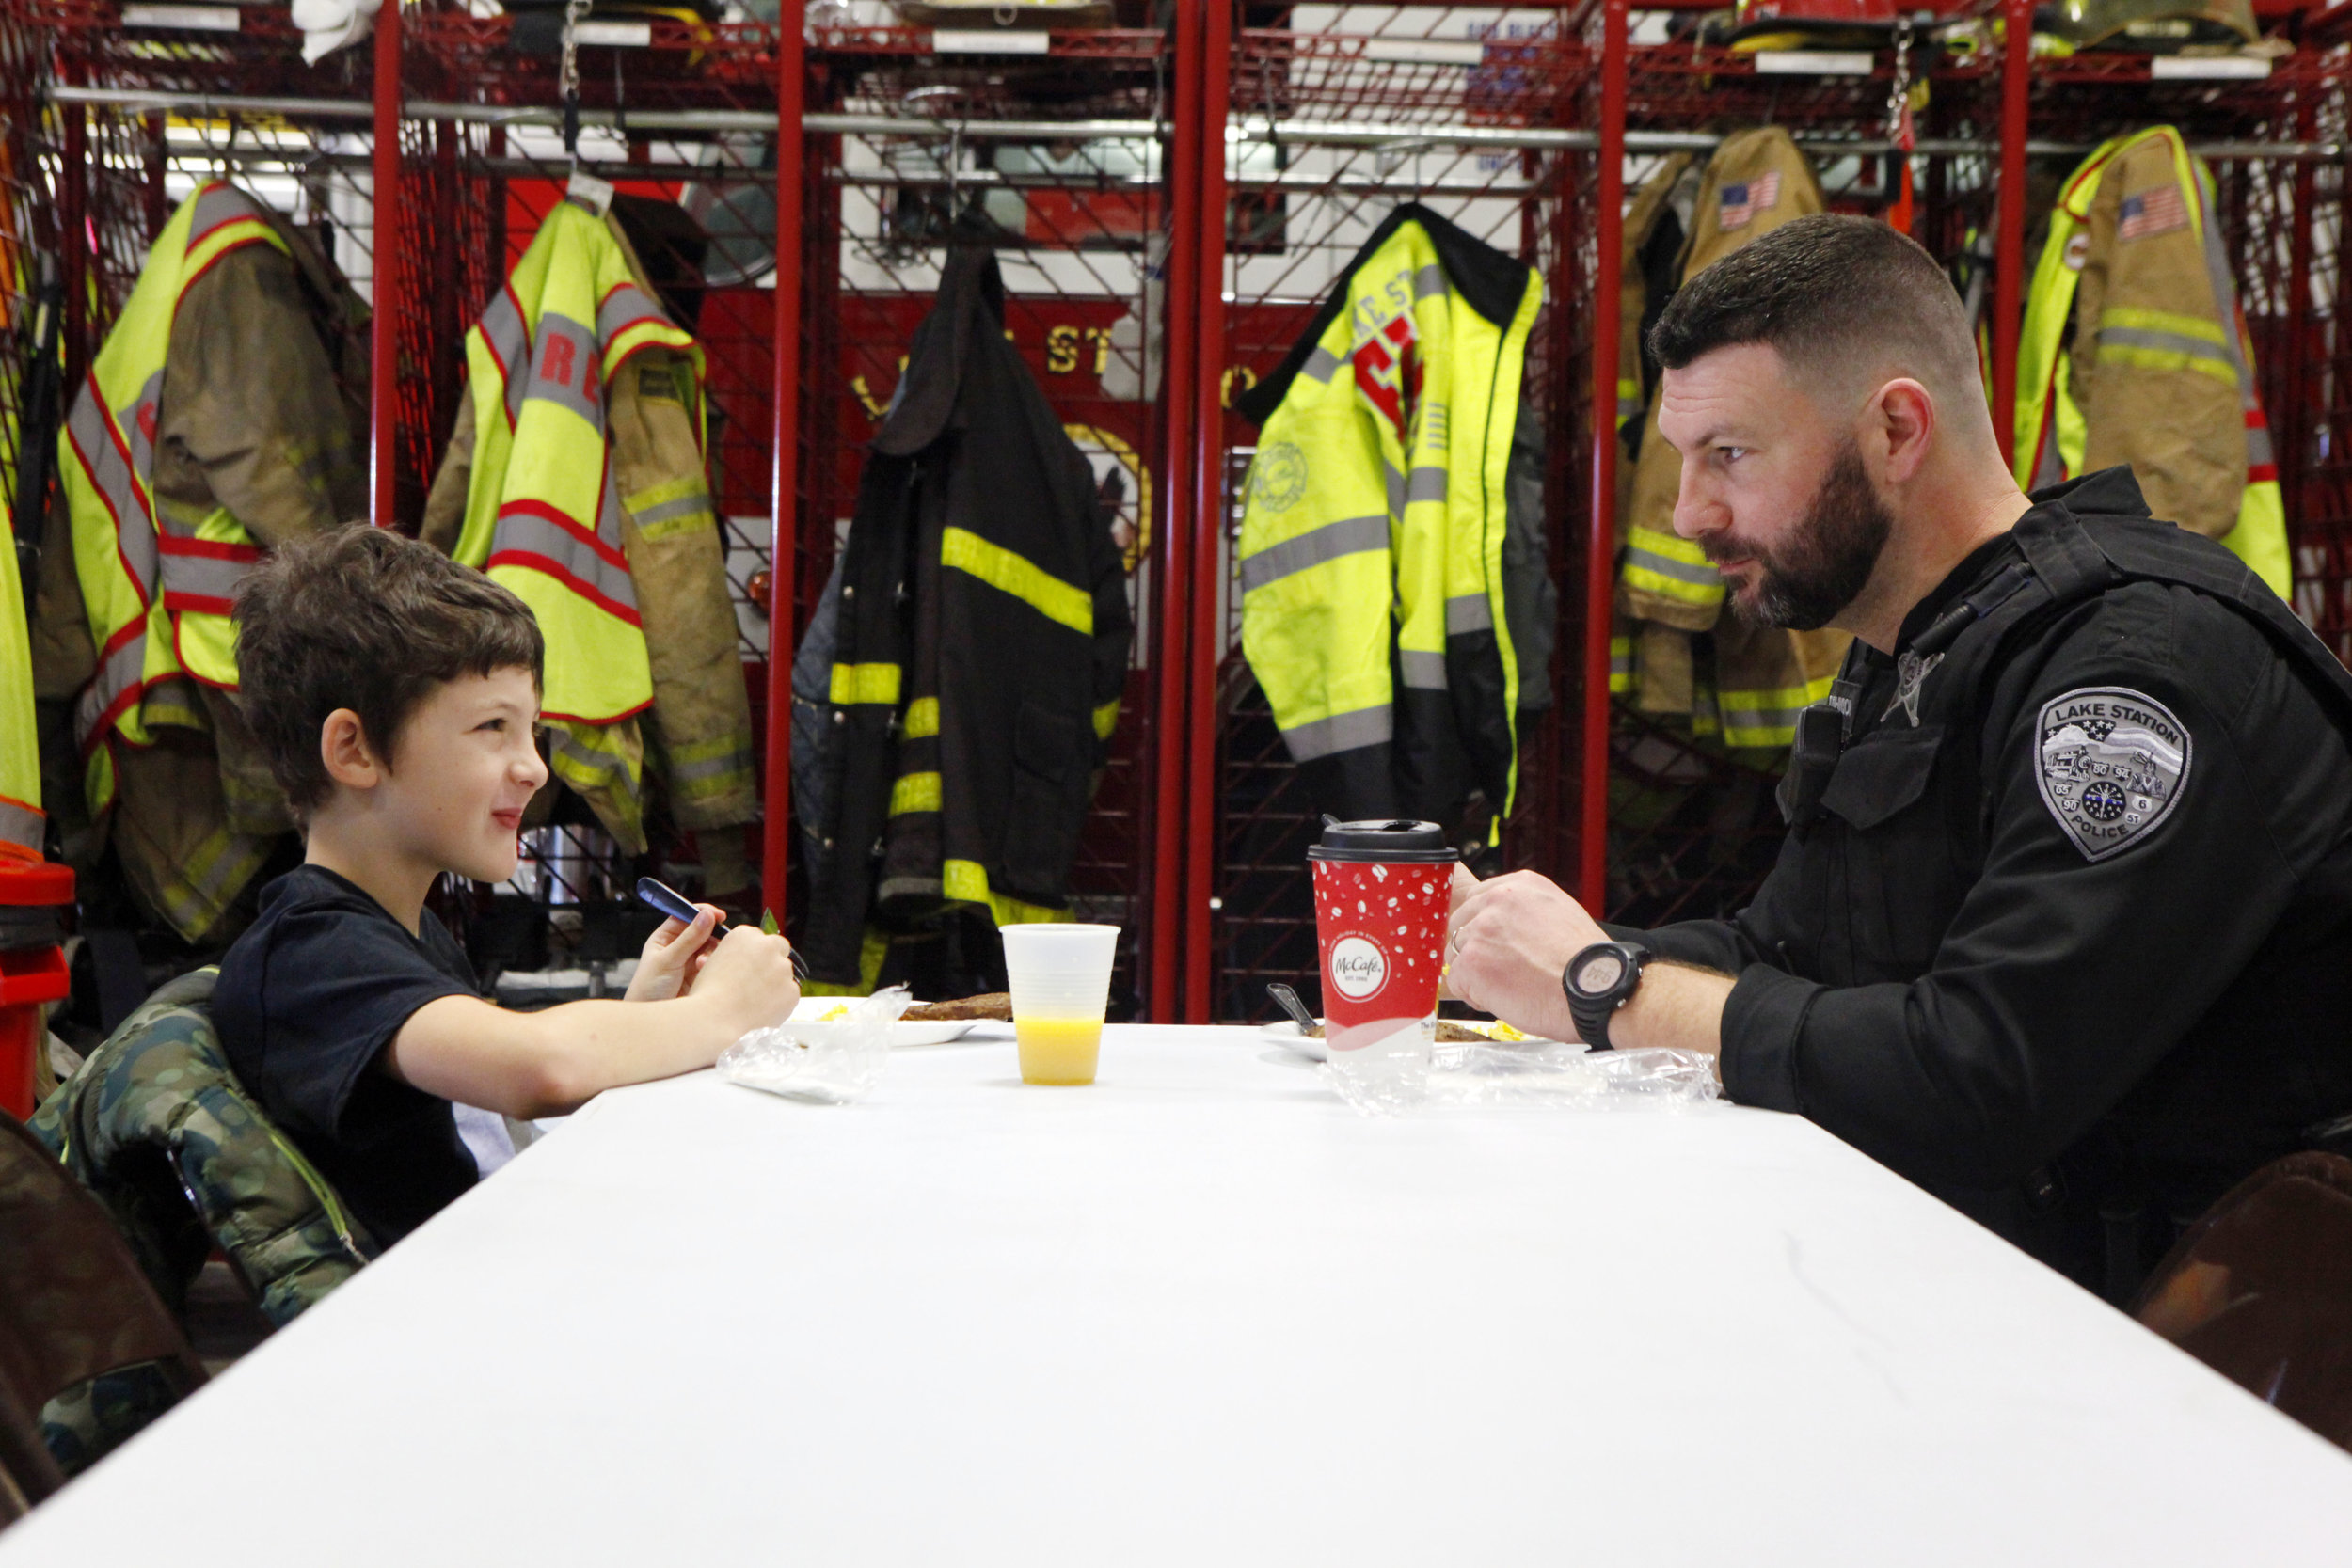 Lake Station Police Chief Dave Johnson, right, shares a conversation and breakfast with Chase Hammons, also of Lake Station, during a holiday youth assistance program hosted by the Fraternal Order of Police Lodge No. 153 at the Lake Station Fire Station.